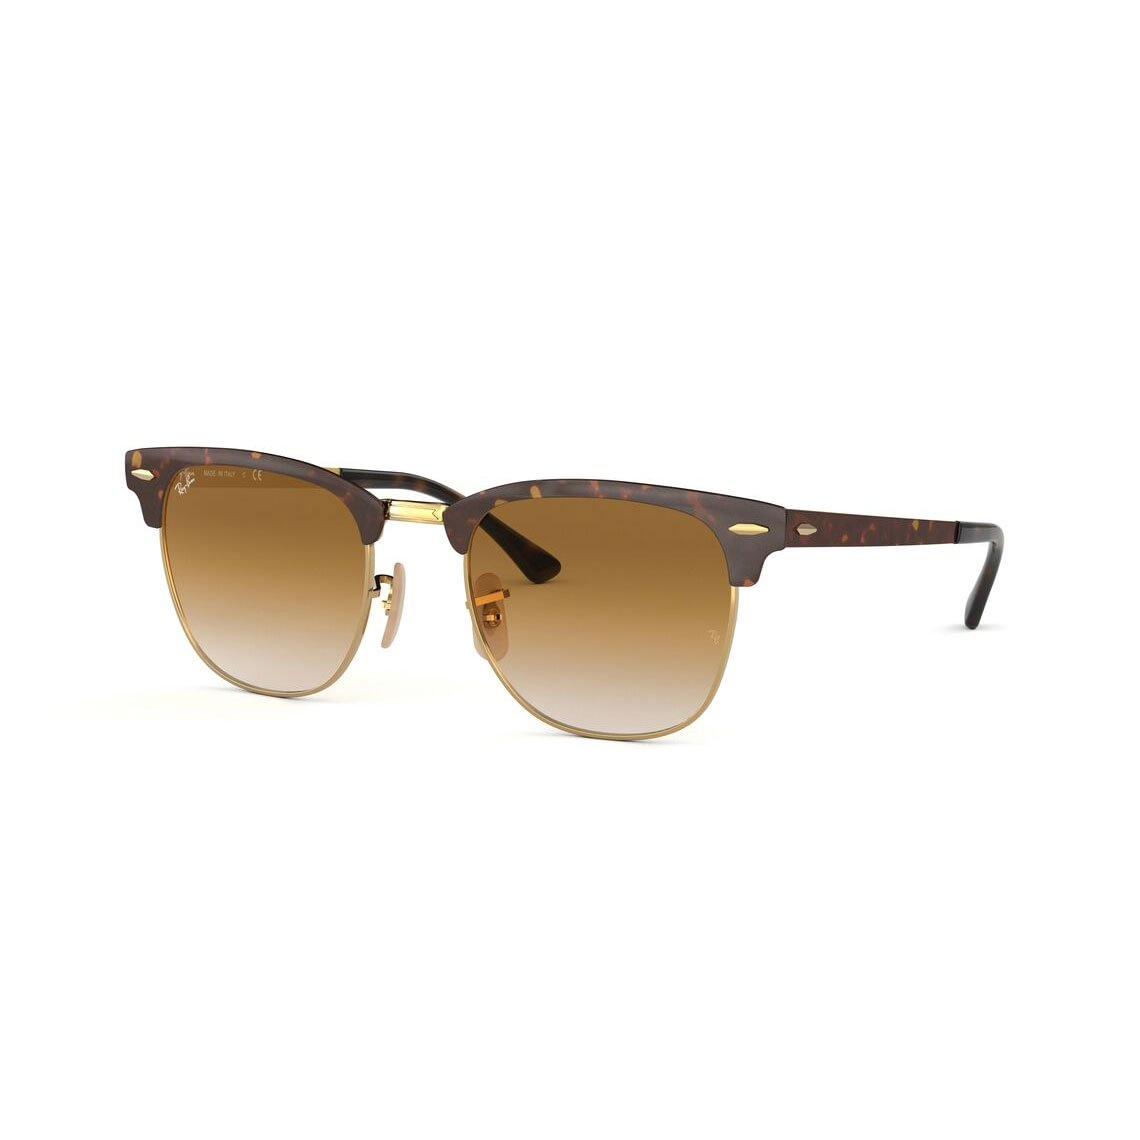 Ray-Ban Clubmaster Metal RB3716 900851 51